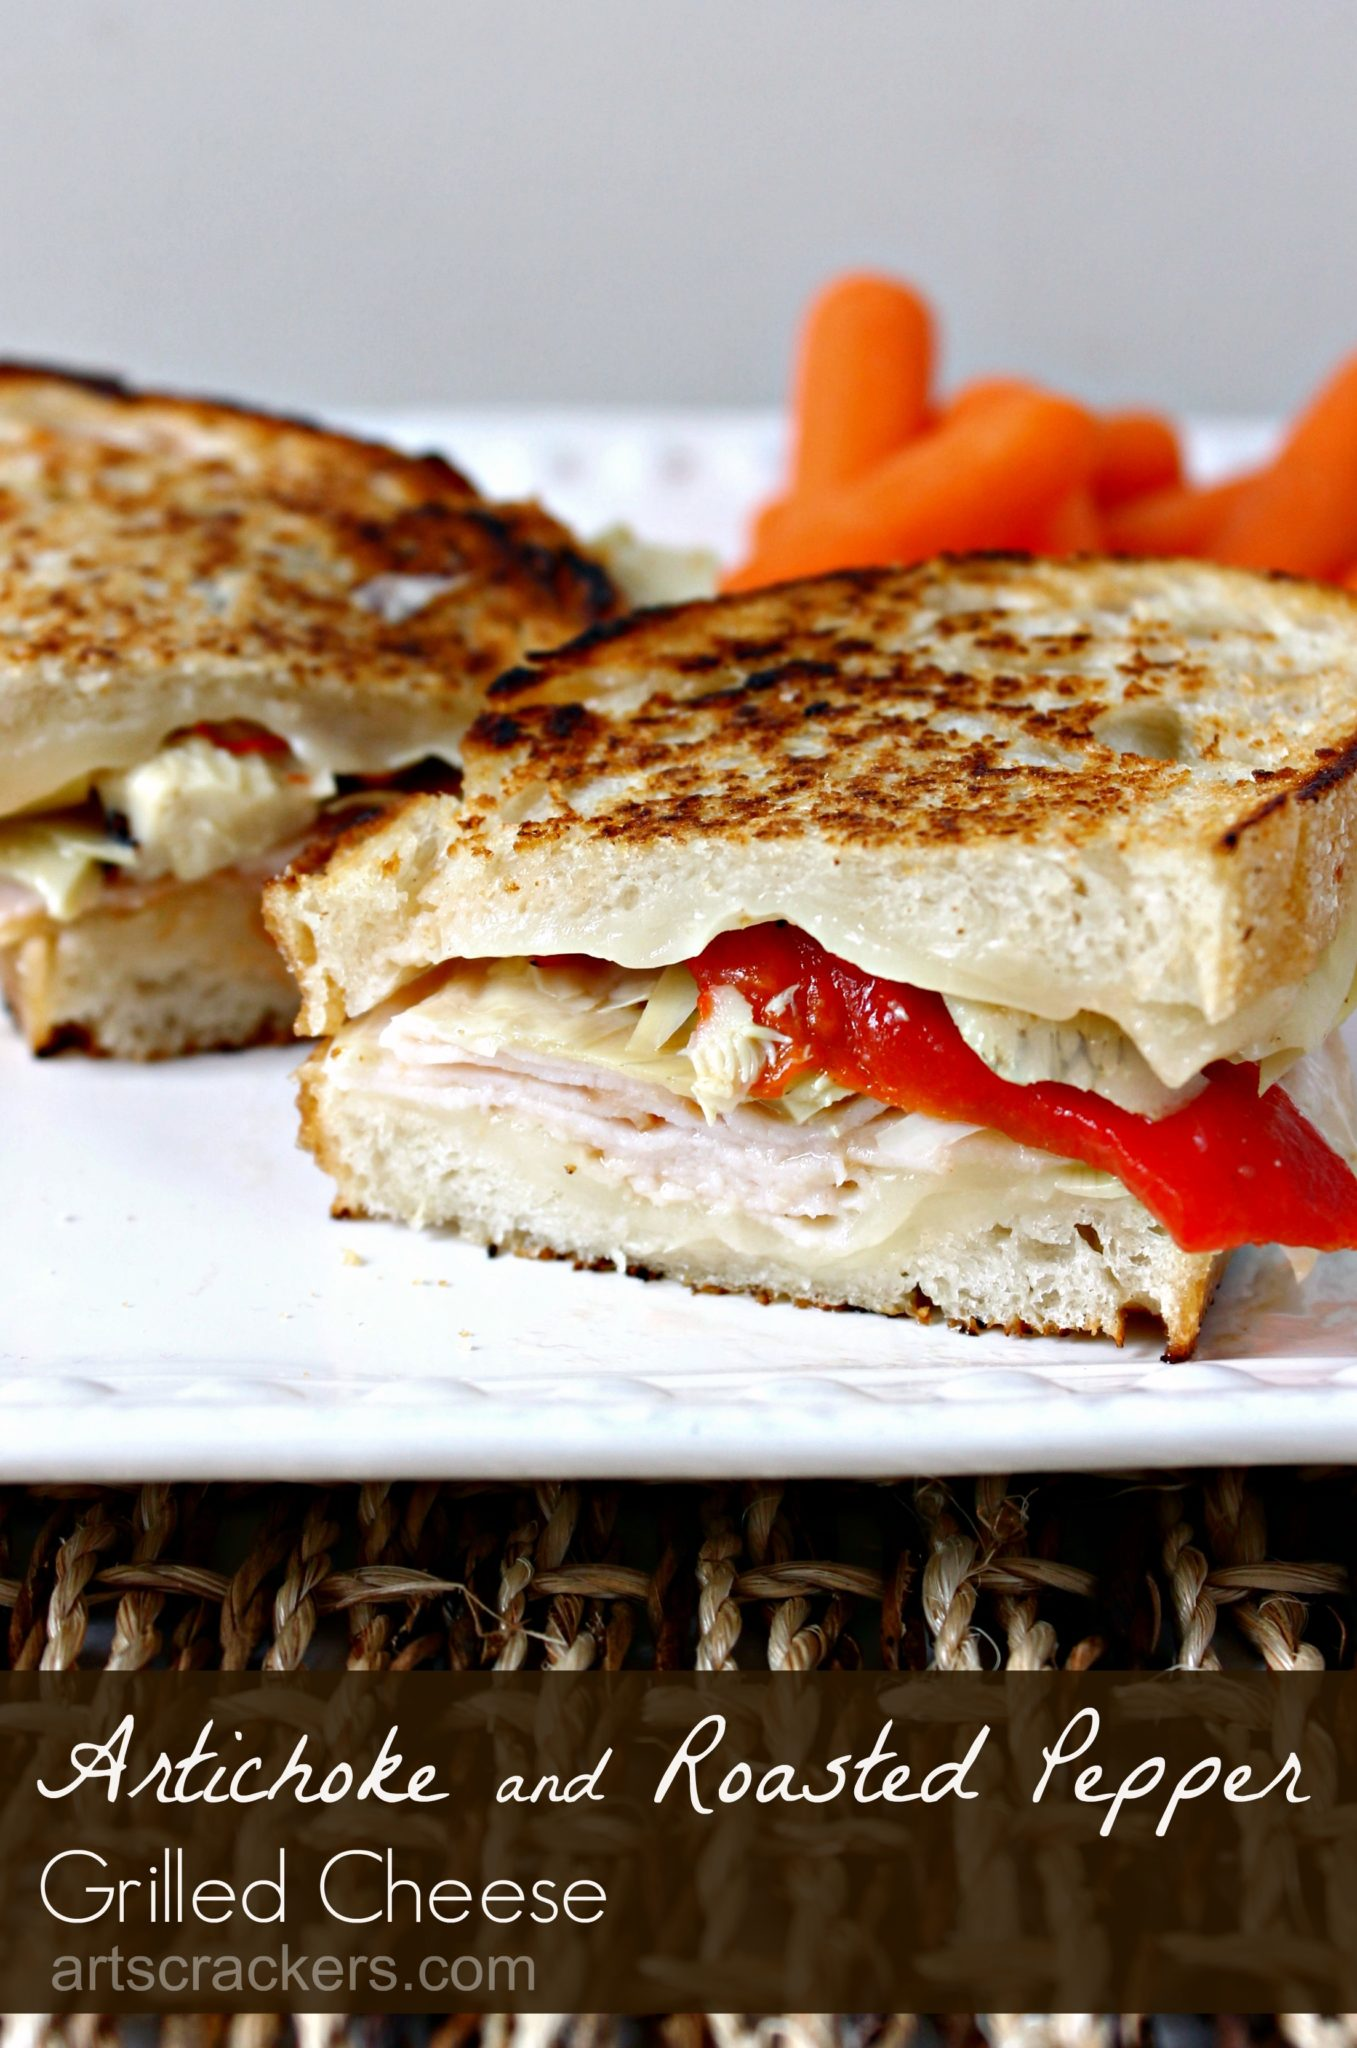 Artichoke and Roasted Pepper Grilled Cheese Recipe